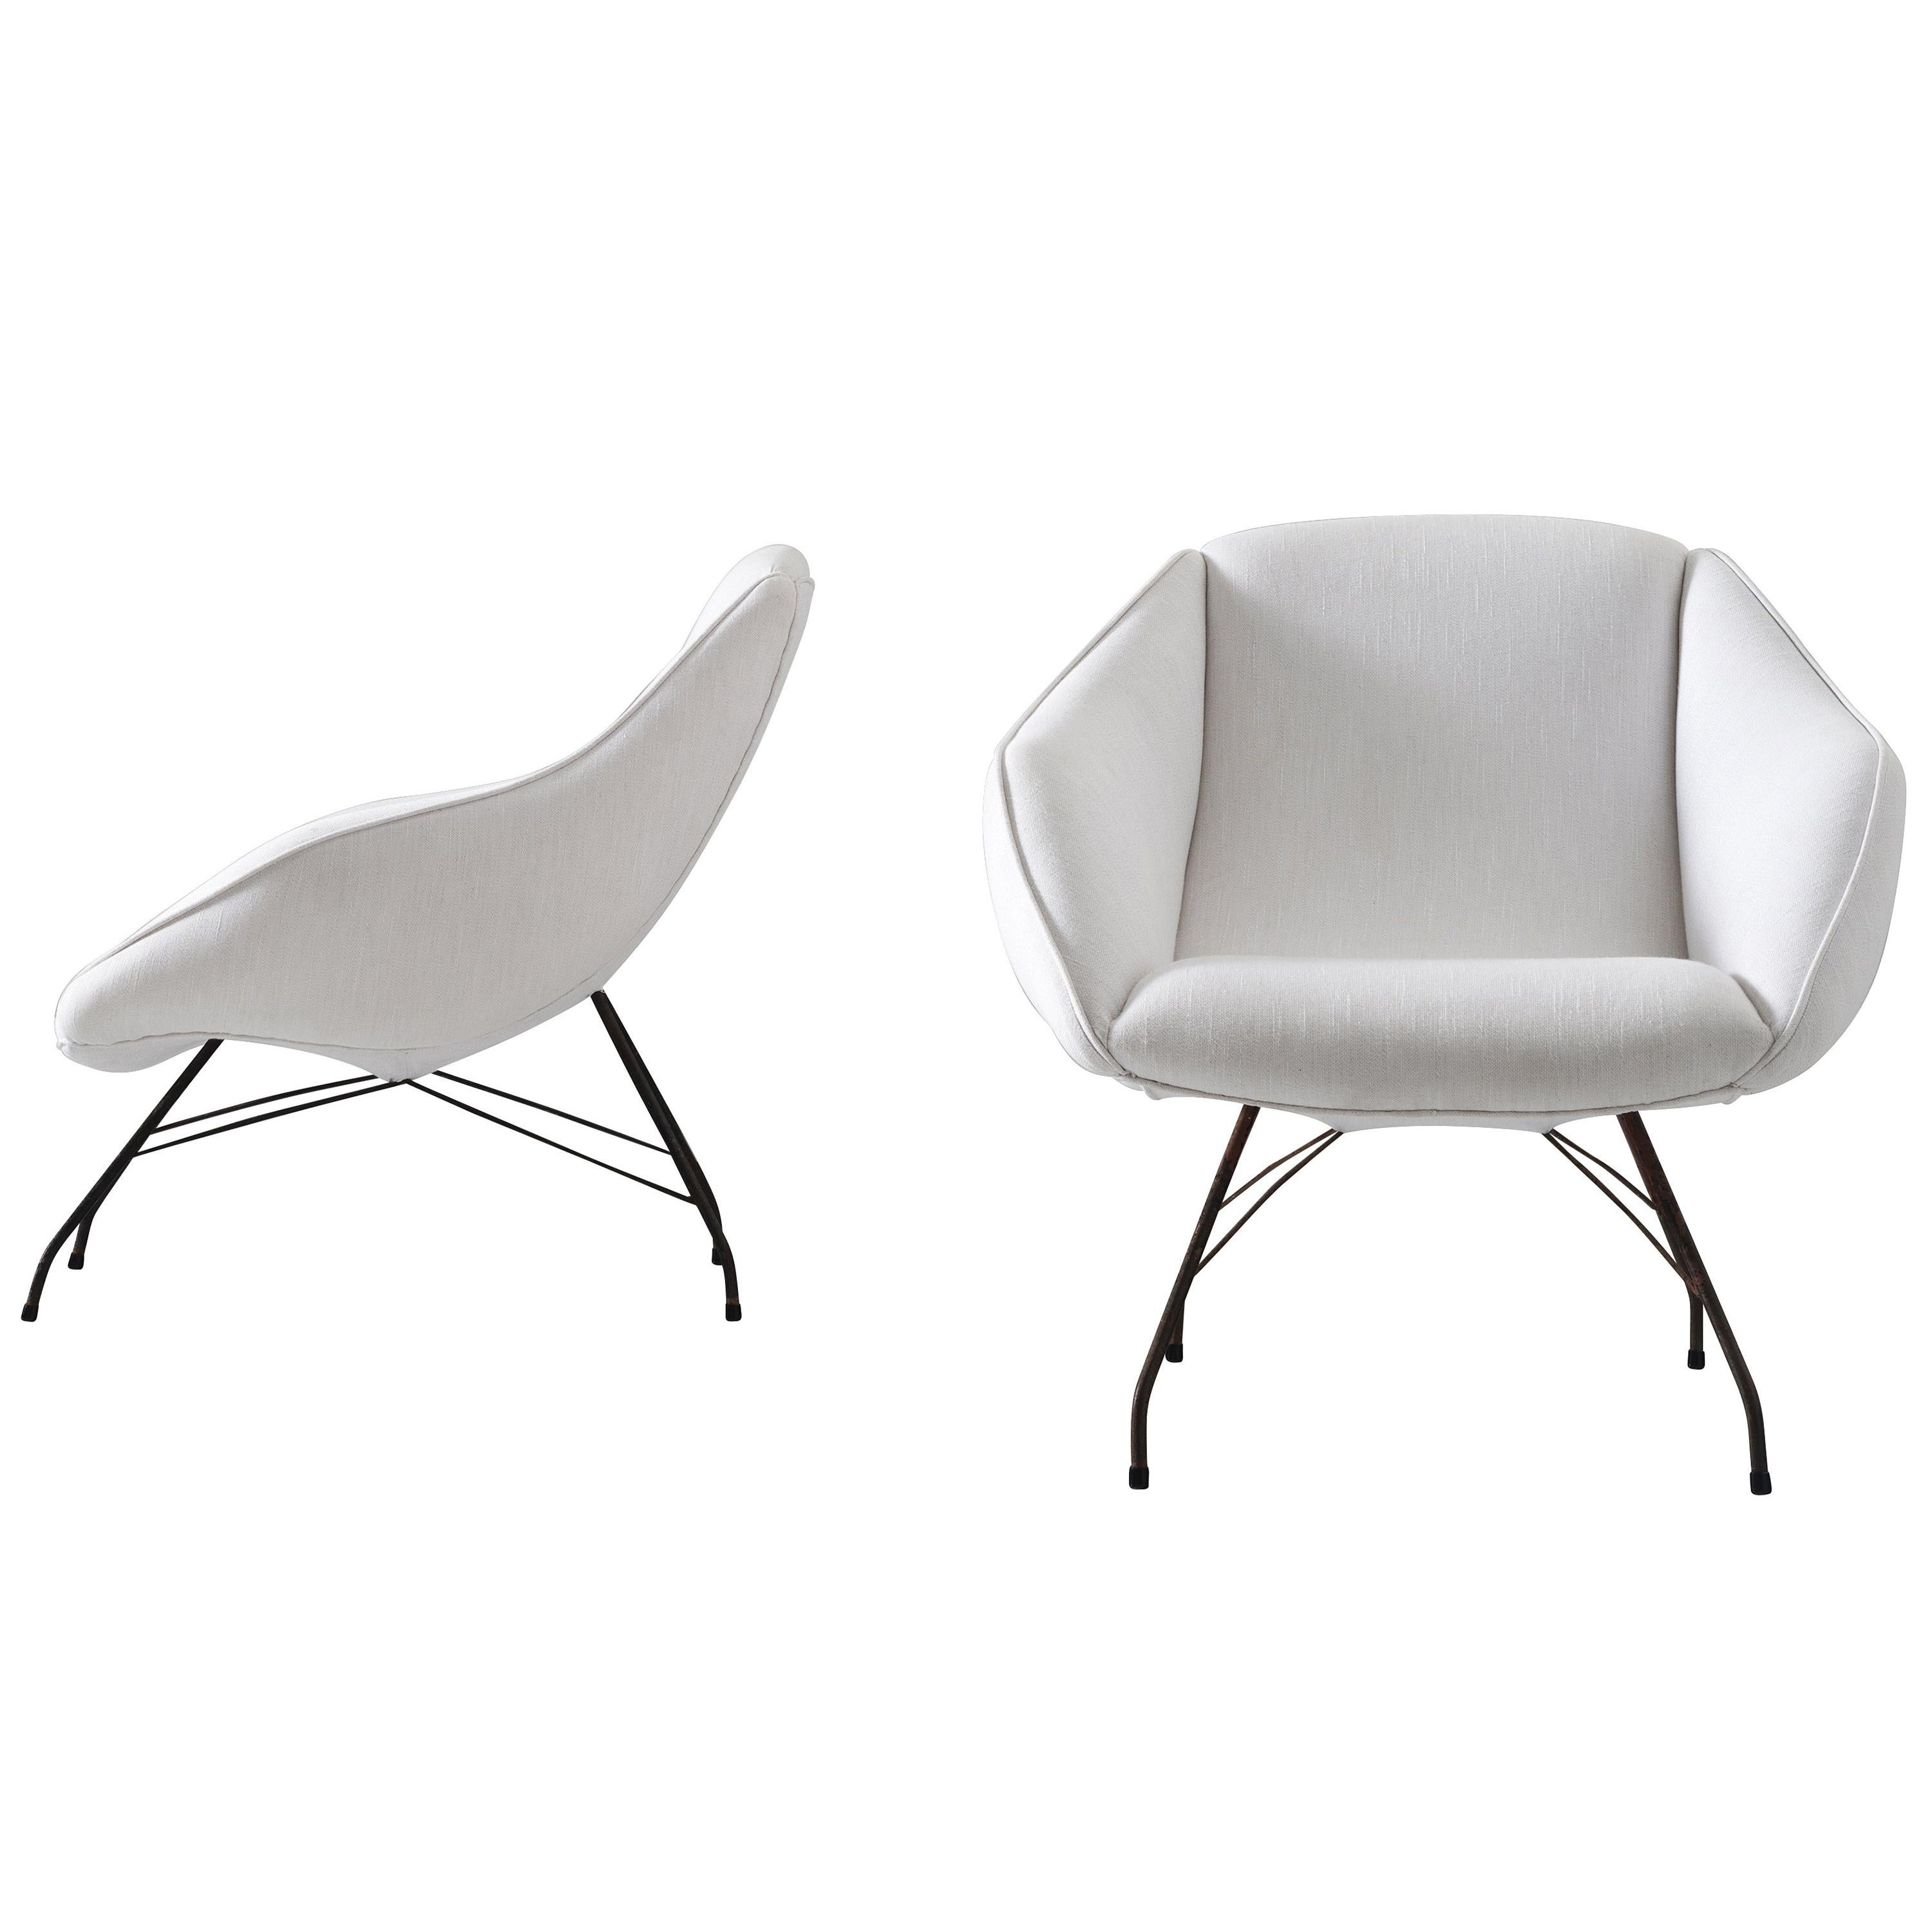 Carlo Hauner and Martin Eisler for Forma Lounge Chairs in White Upholstery